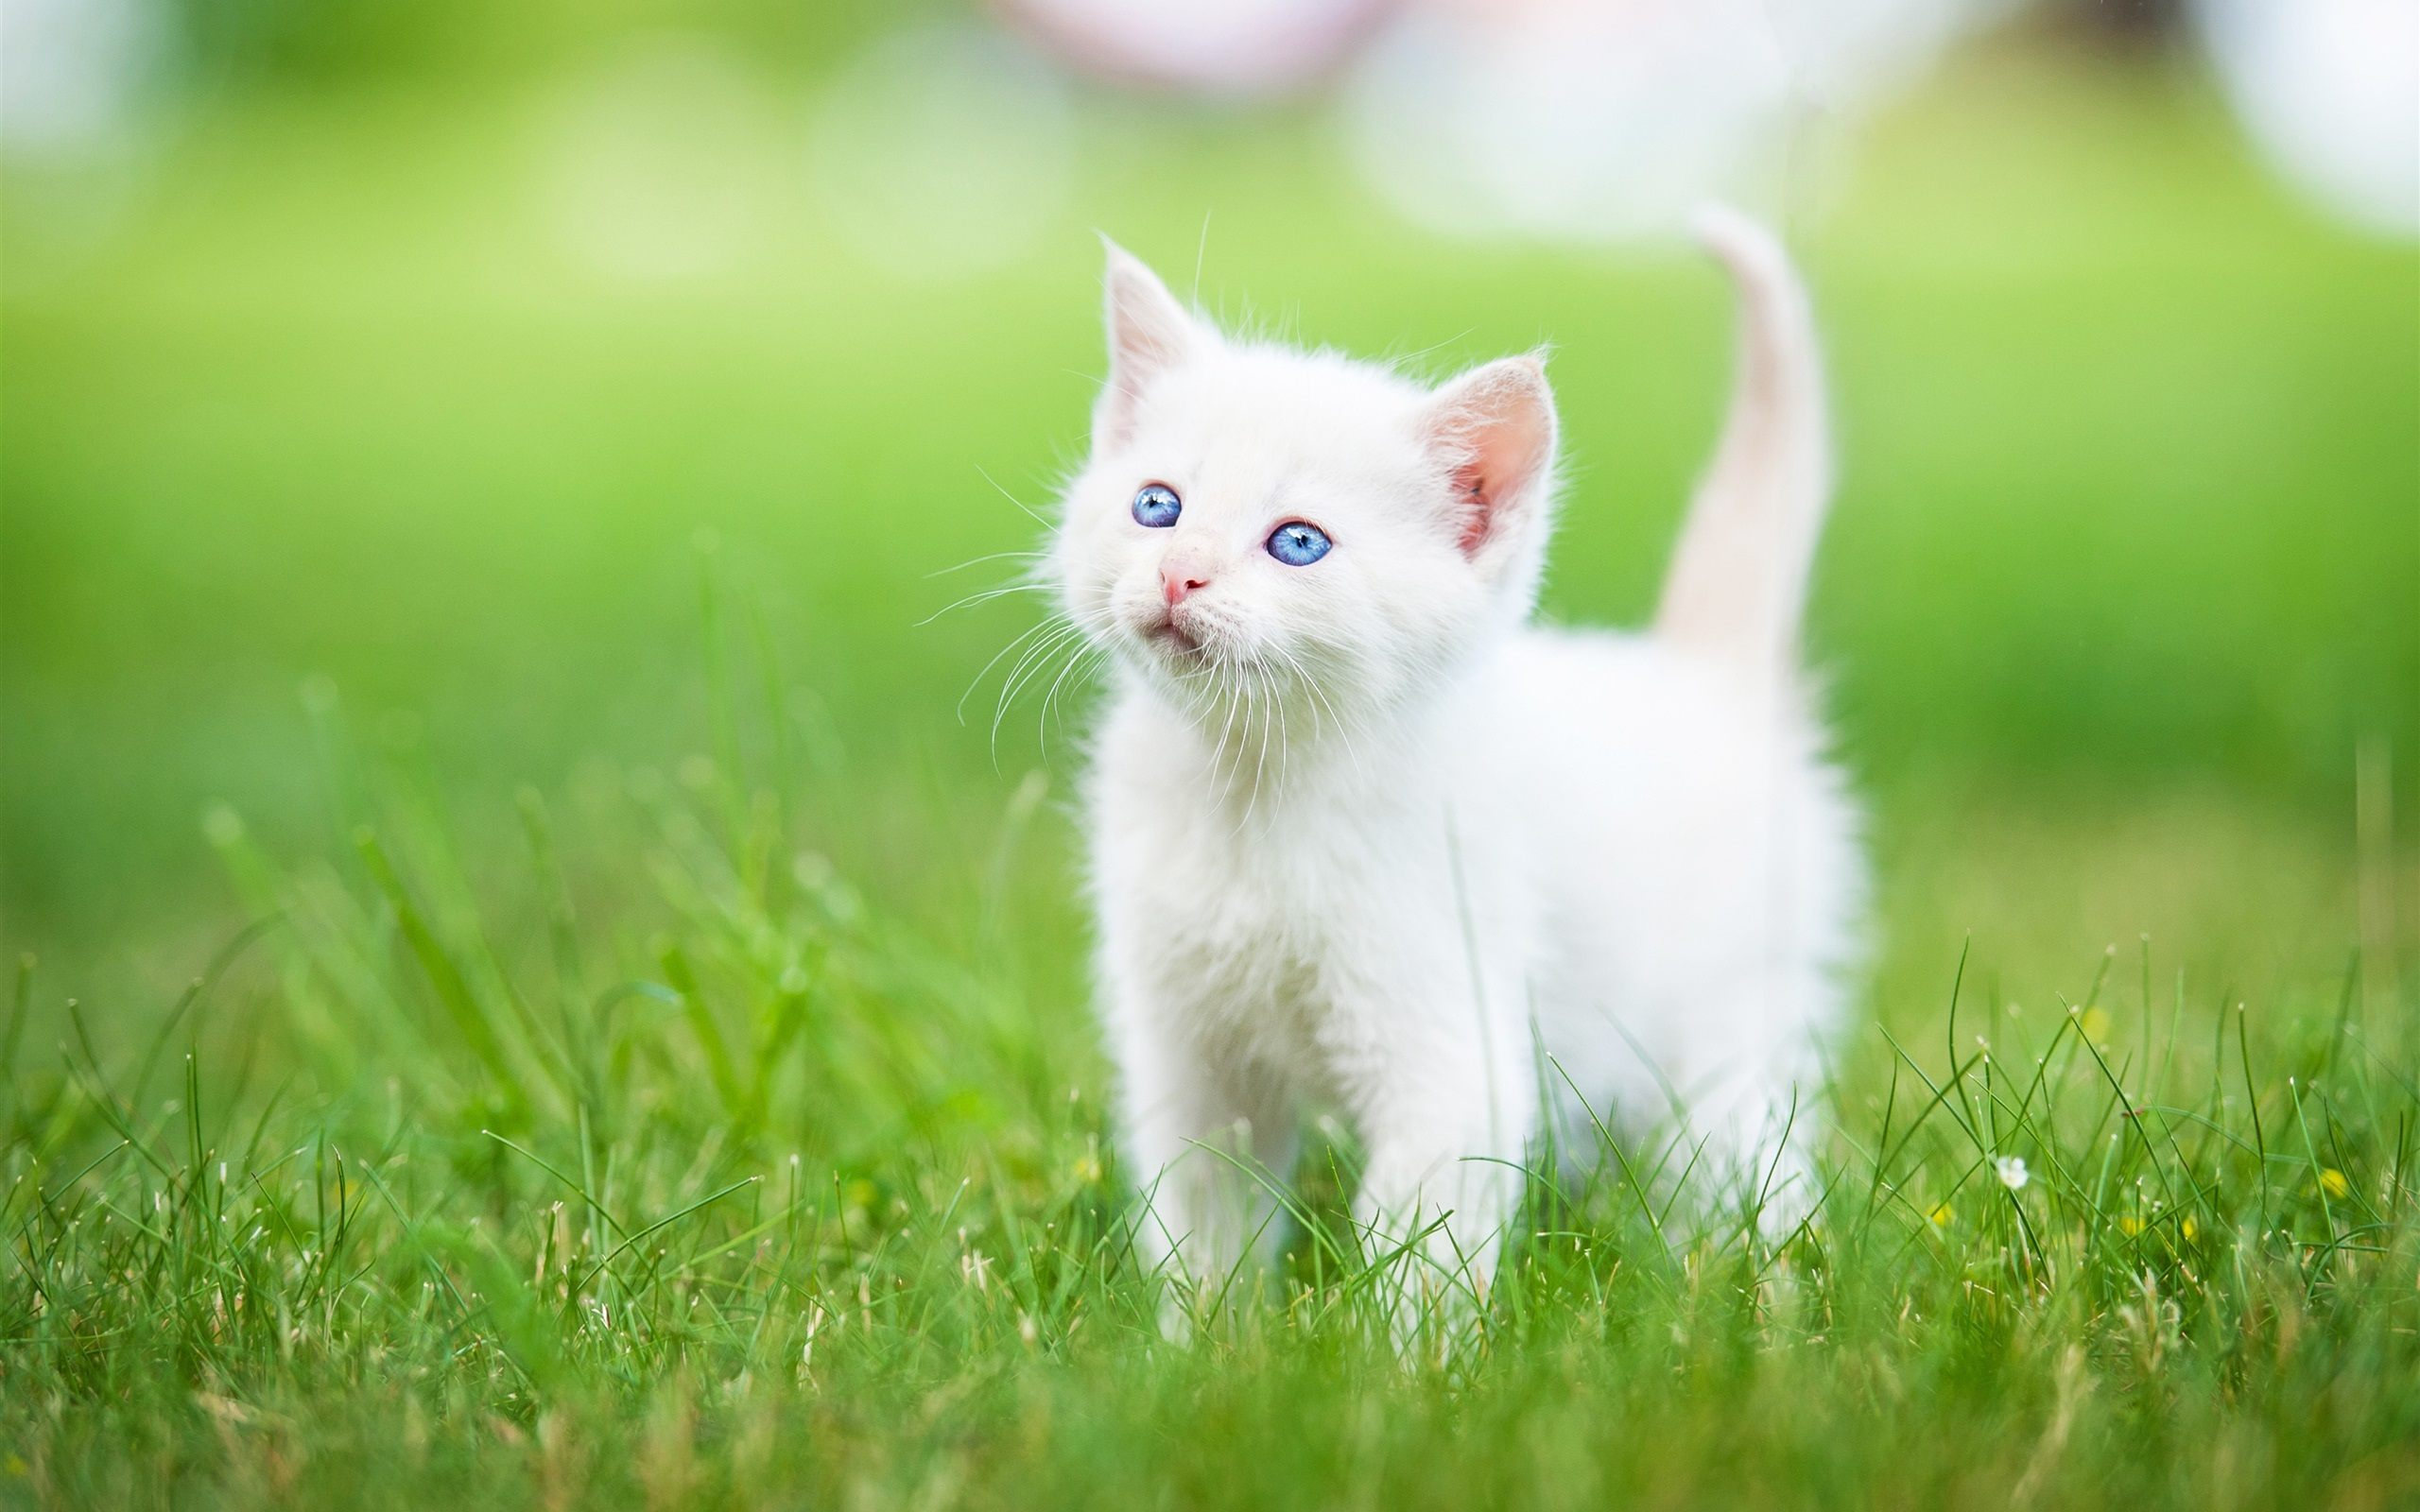 How to Take Care of Your Kitten When You Buy a Kitten- Do's And Don'ts